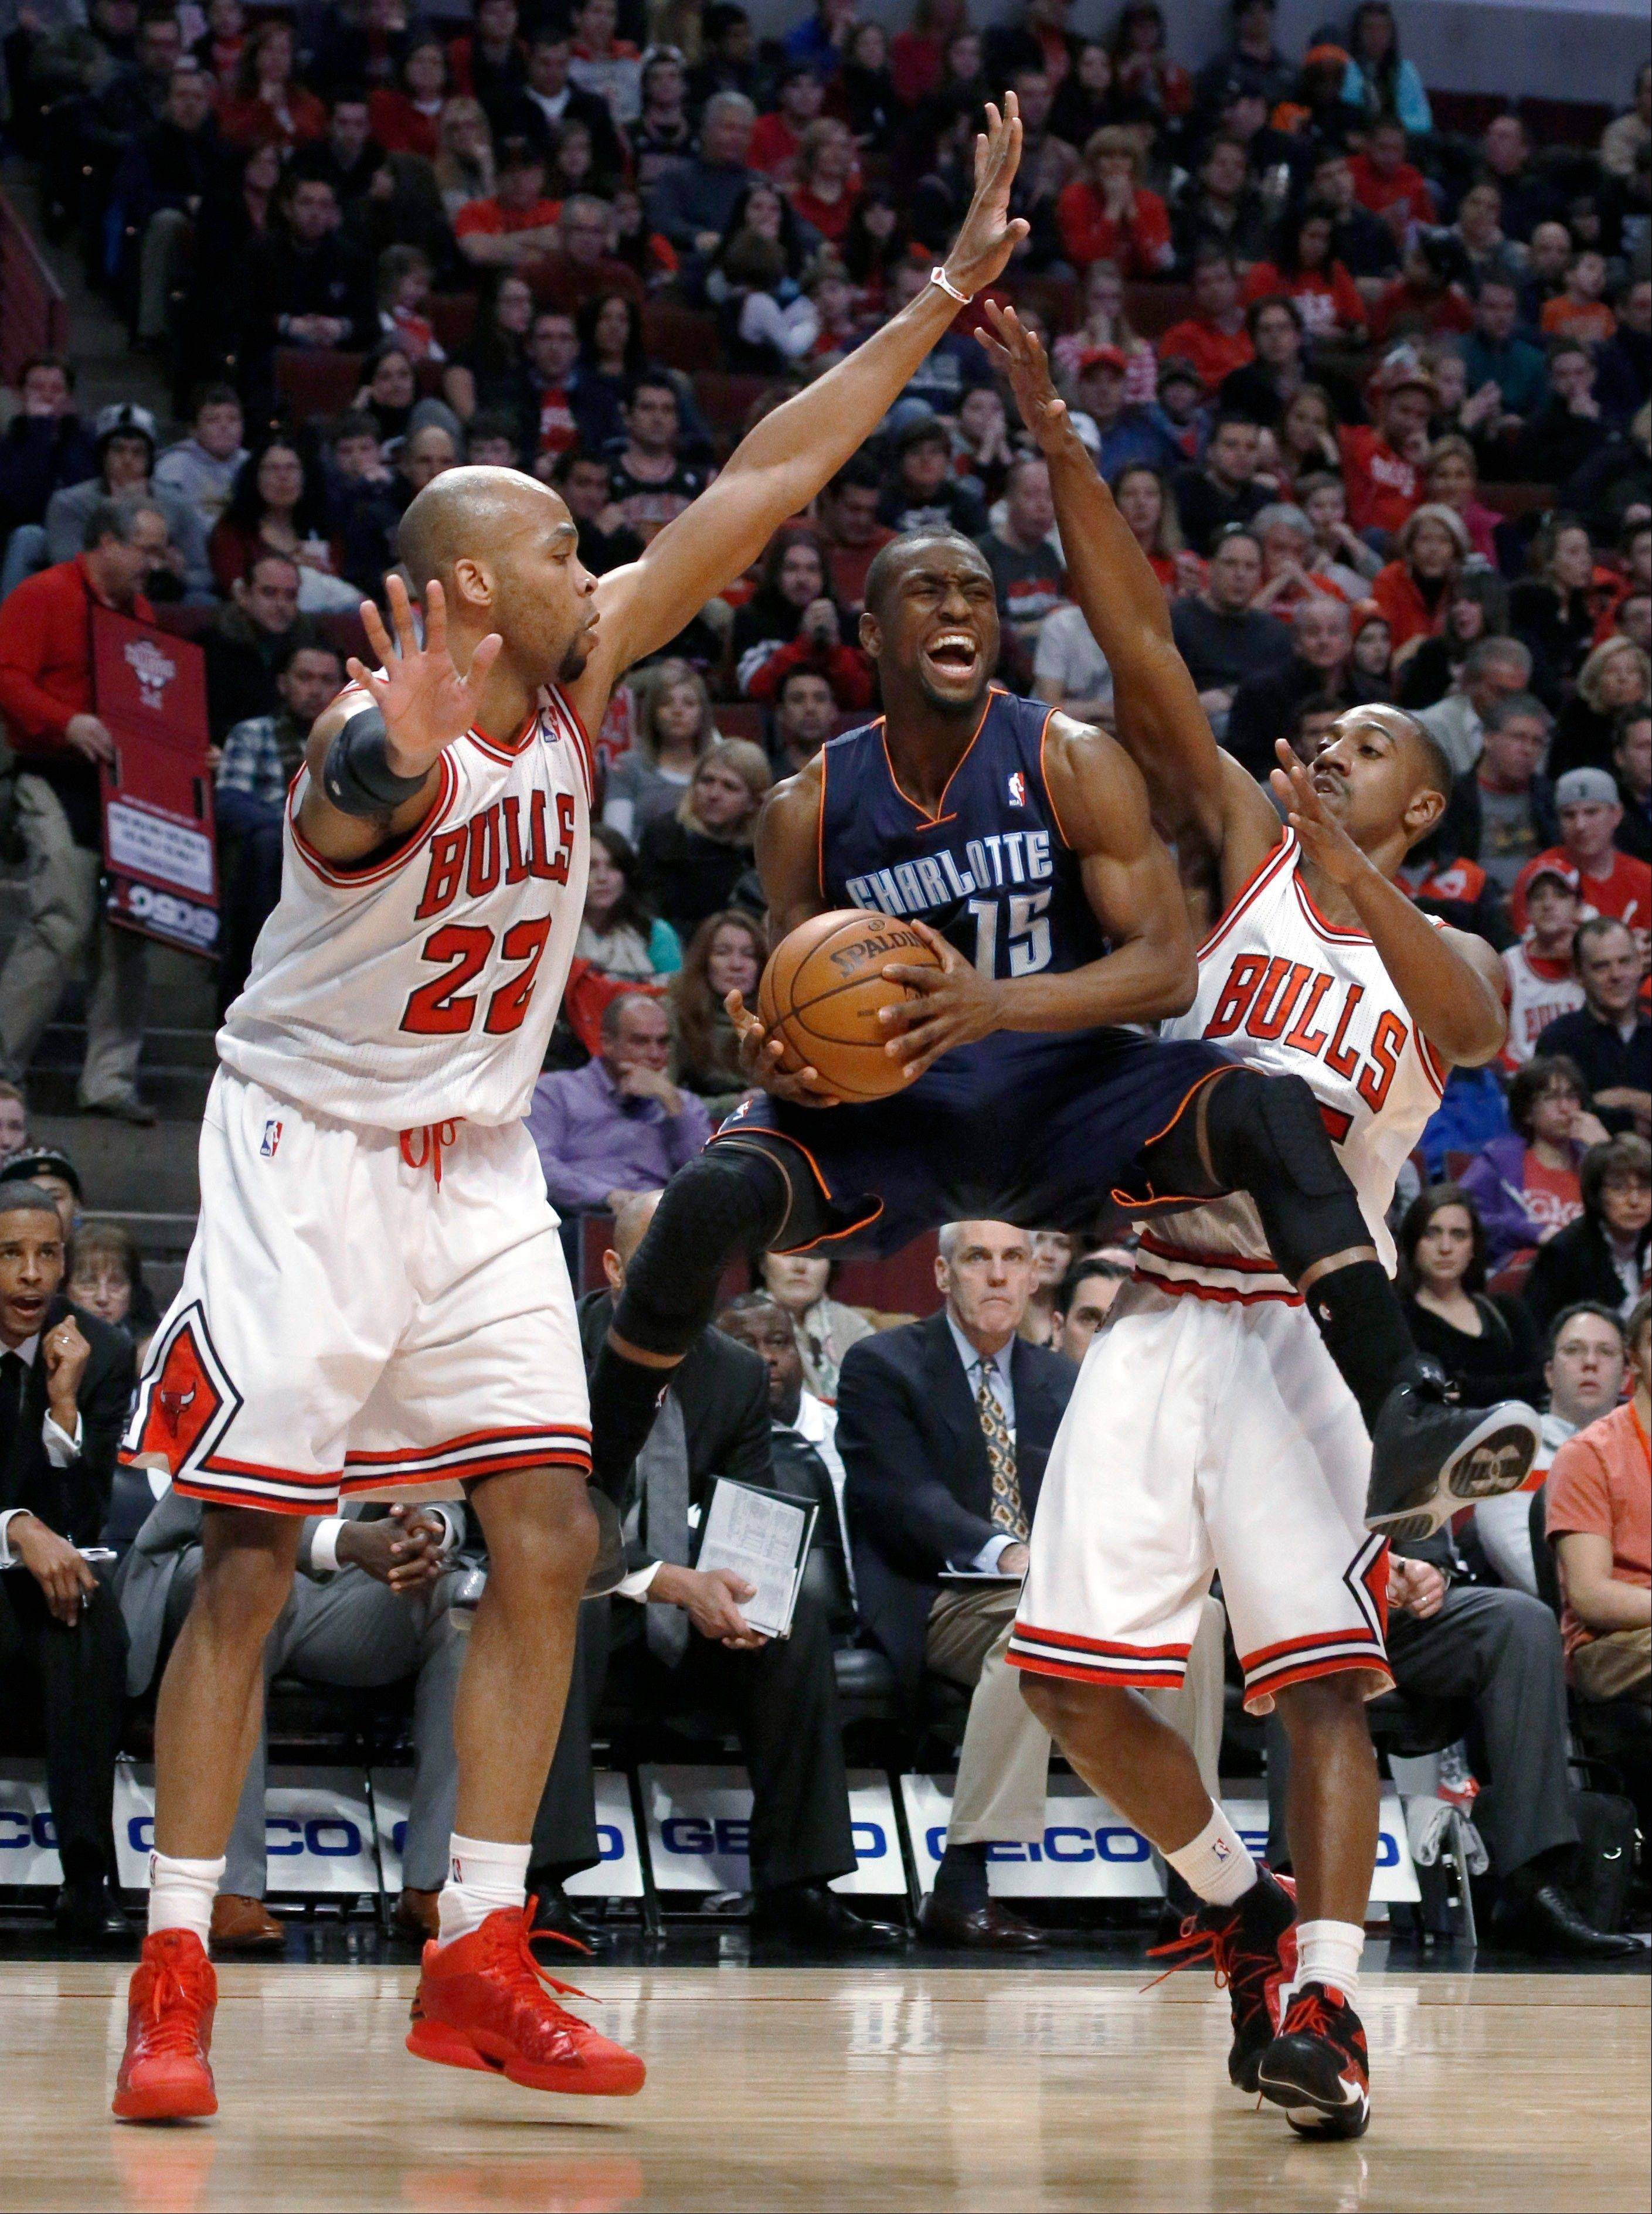 Charlotte Bobcats guard Kemba Walker (15) splits the defense of Chicago Bulls'Taj Gibson (22) and Marquis Teague during the first half of an NBA basketball game Monday, Dec. 31, 2012, in Chicago.